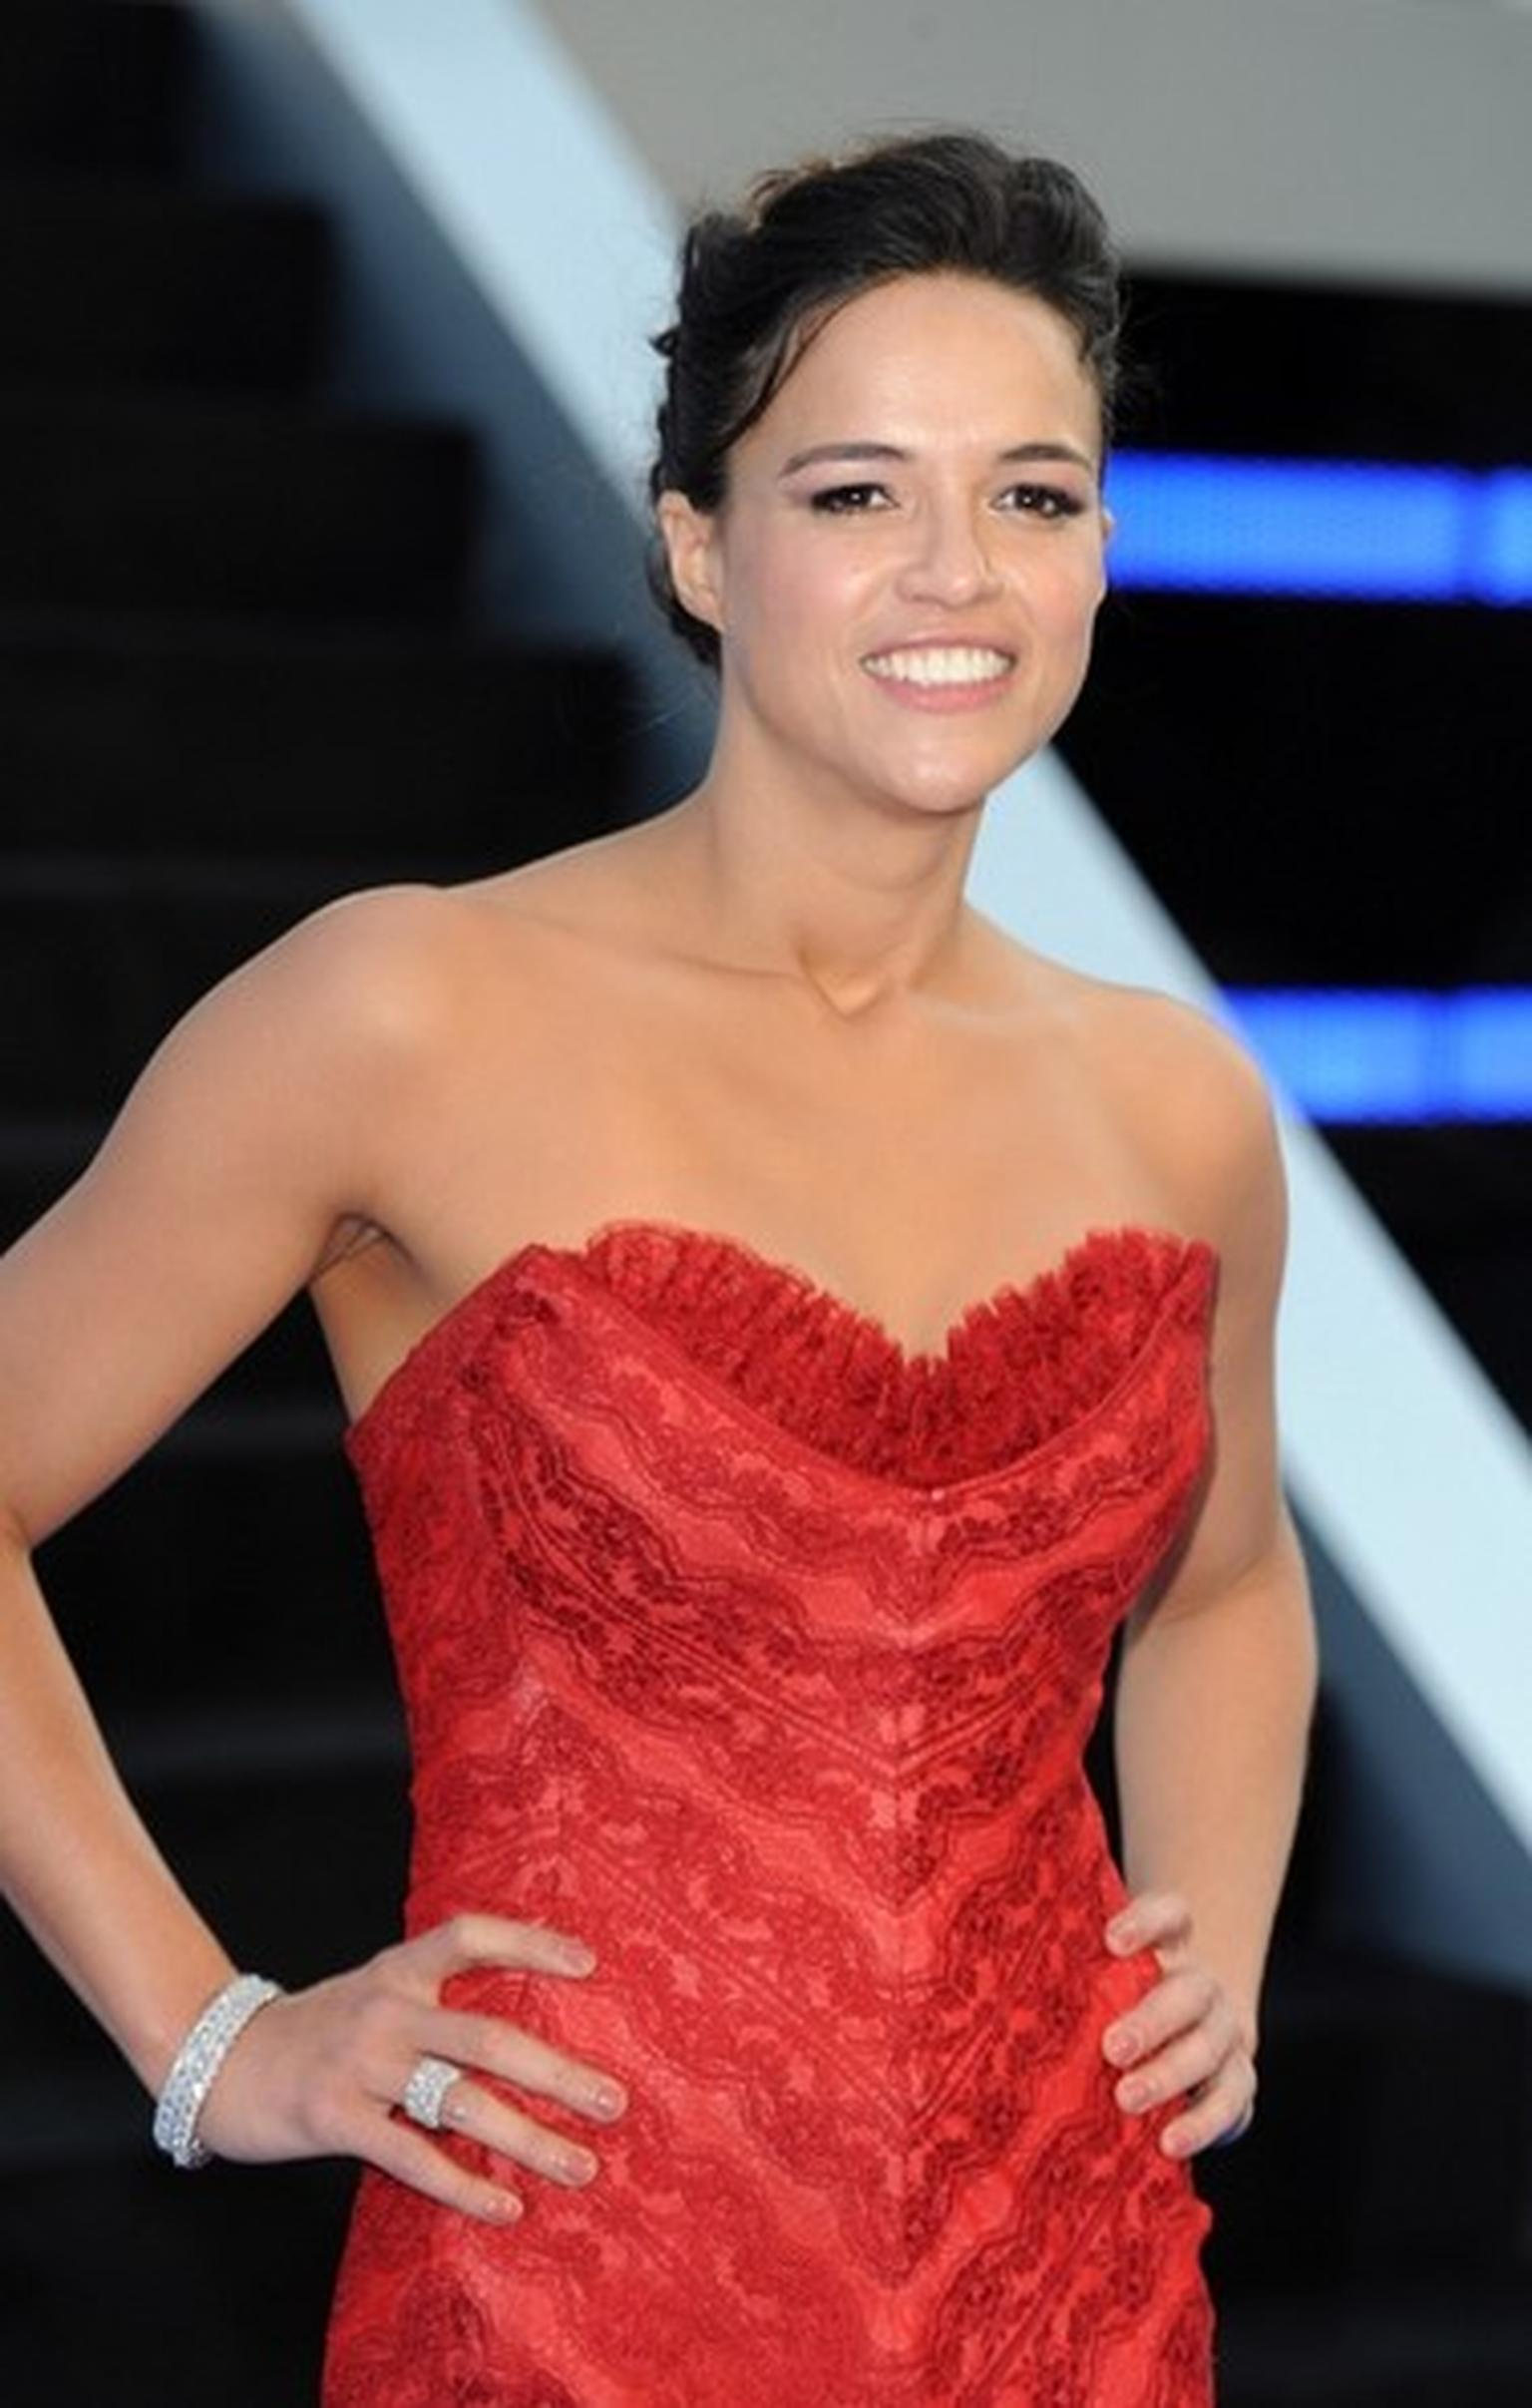 Michelle Rodriguez at the Fast & Furious 6 premier wearing two David Morris Rose-Cut diamond bangles and a matching three row Rose Cut diamond eternity band.